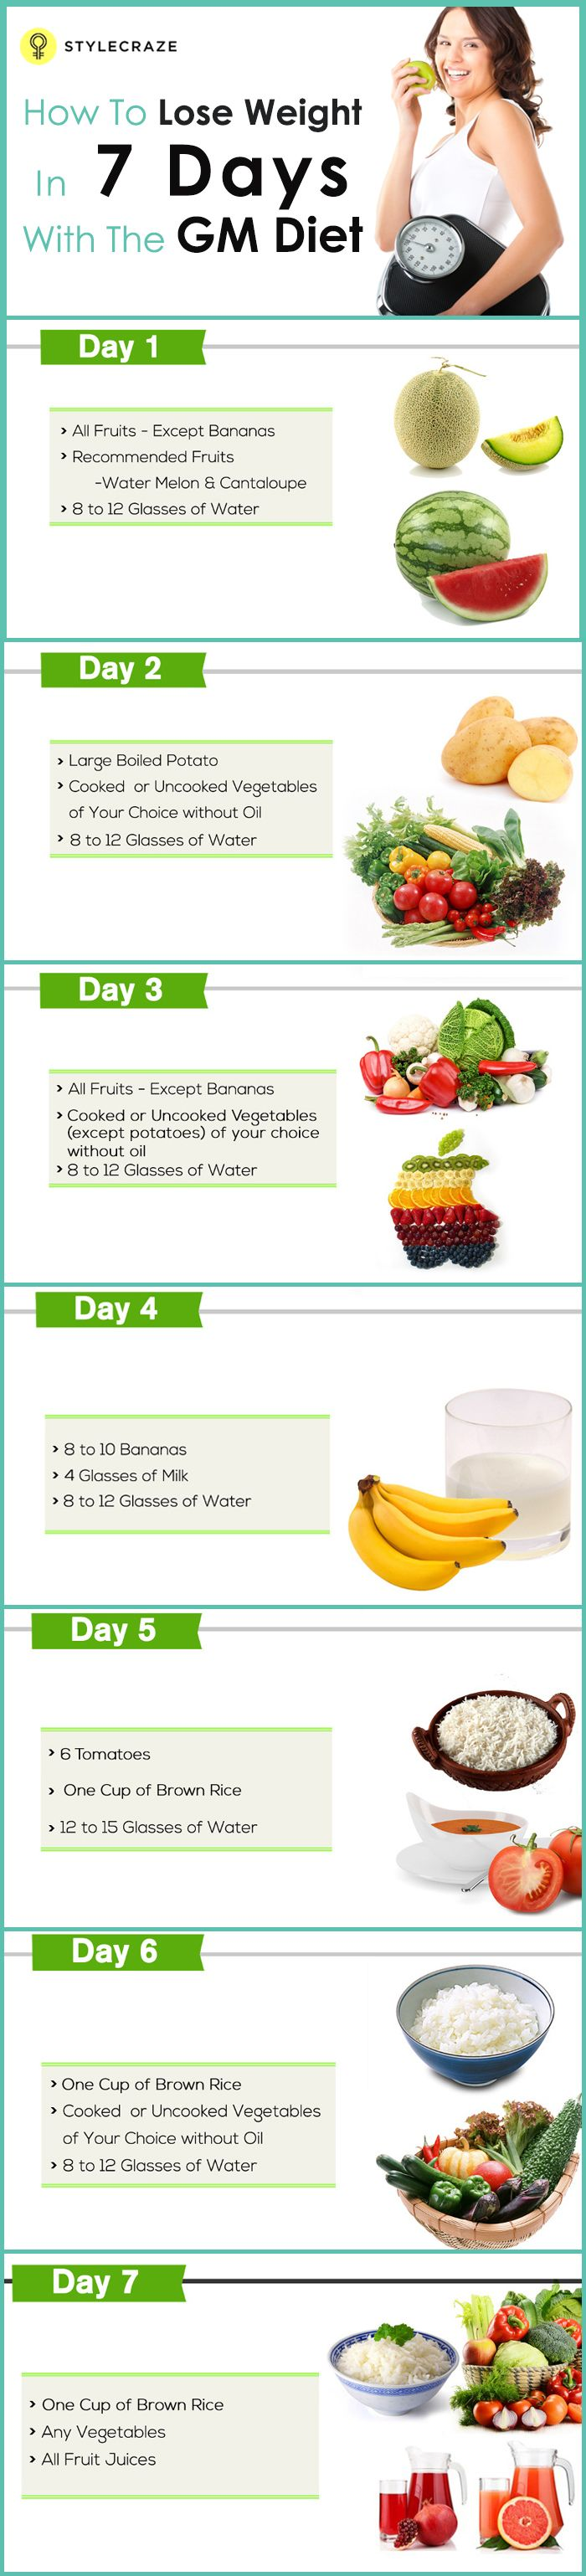 Juliette's 7-Day Detox Plan